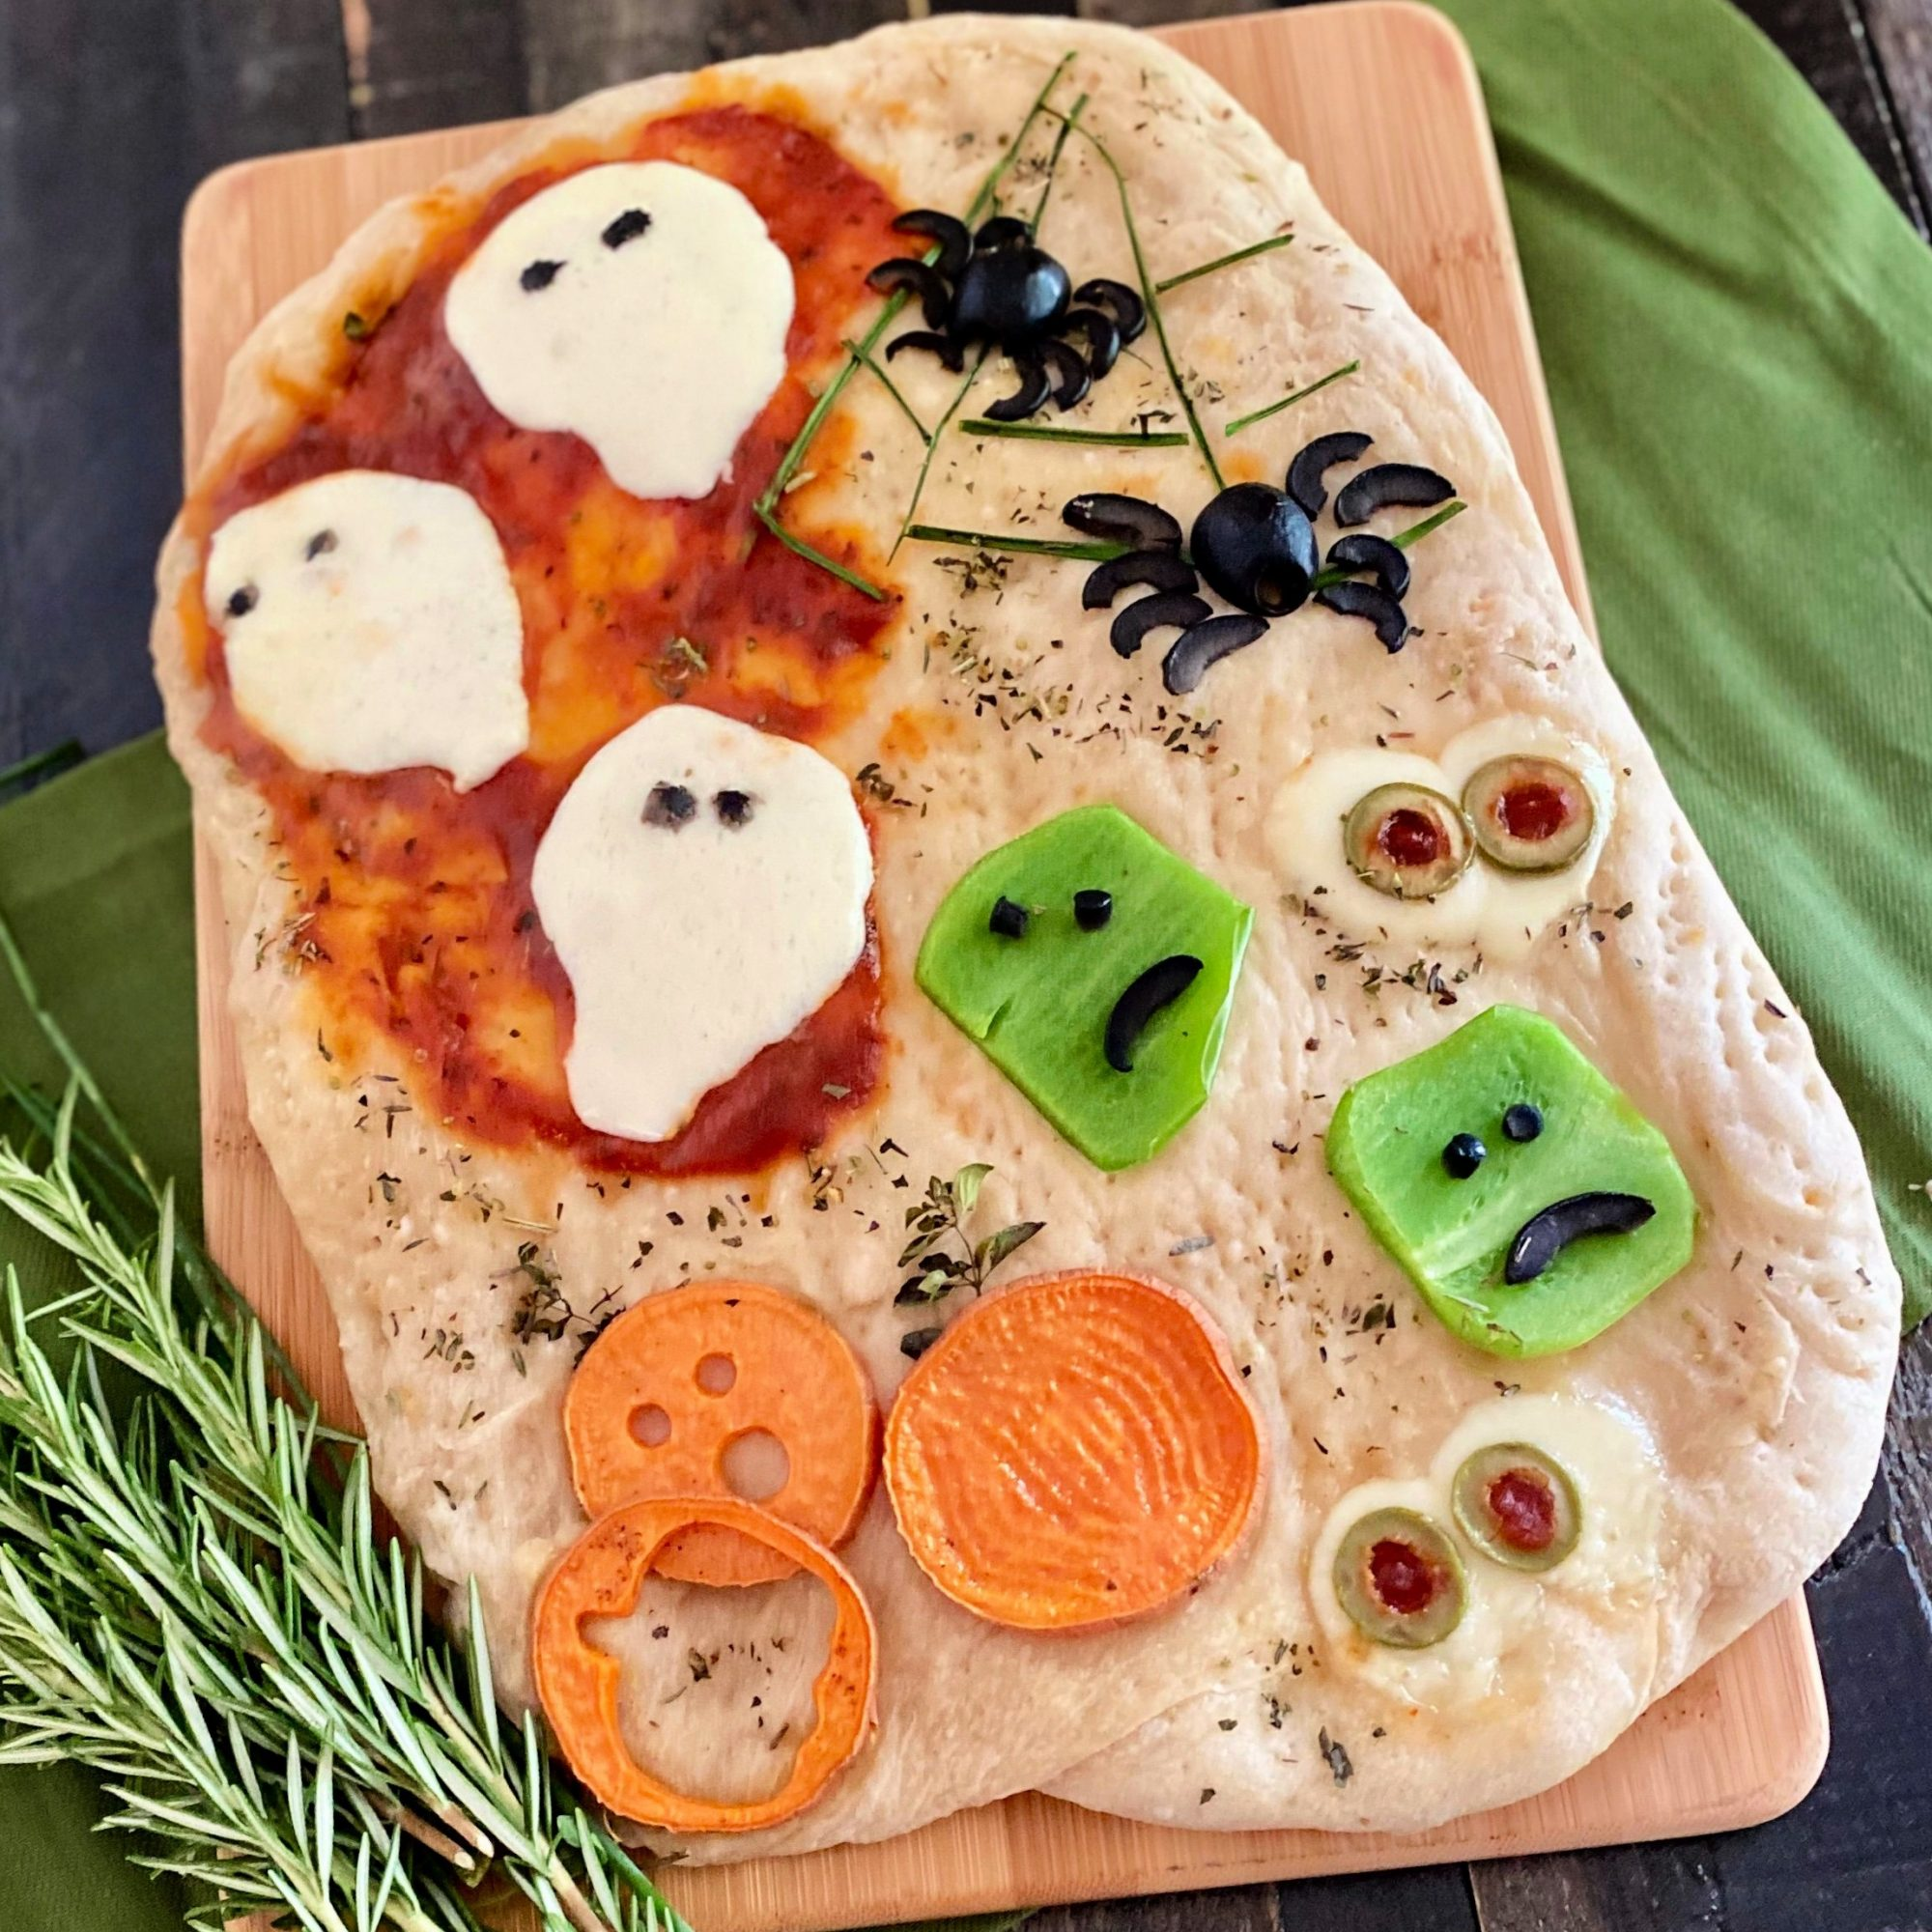 focaccia bread decorated with cheese ghosts, yam pumpkins, and black olive spiders